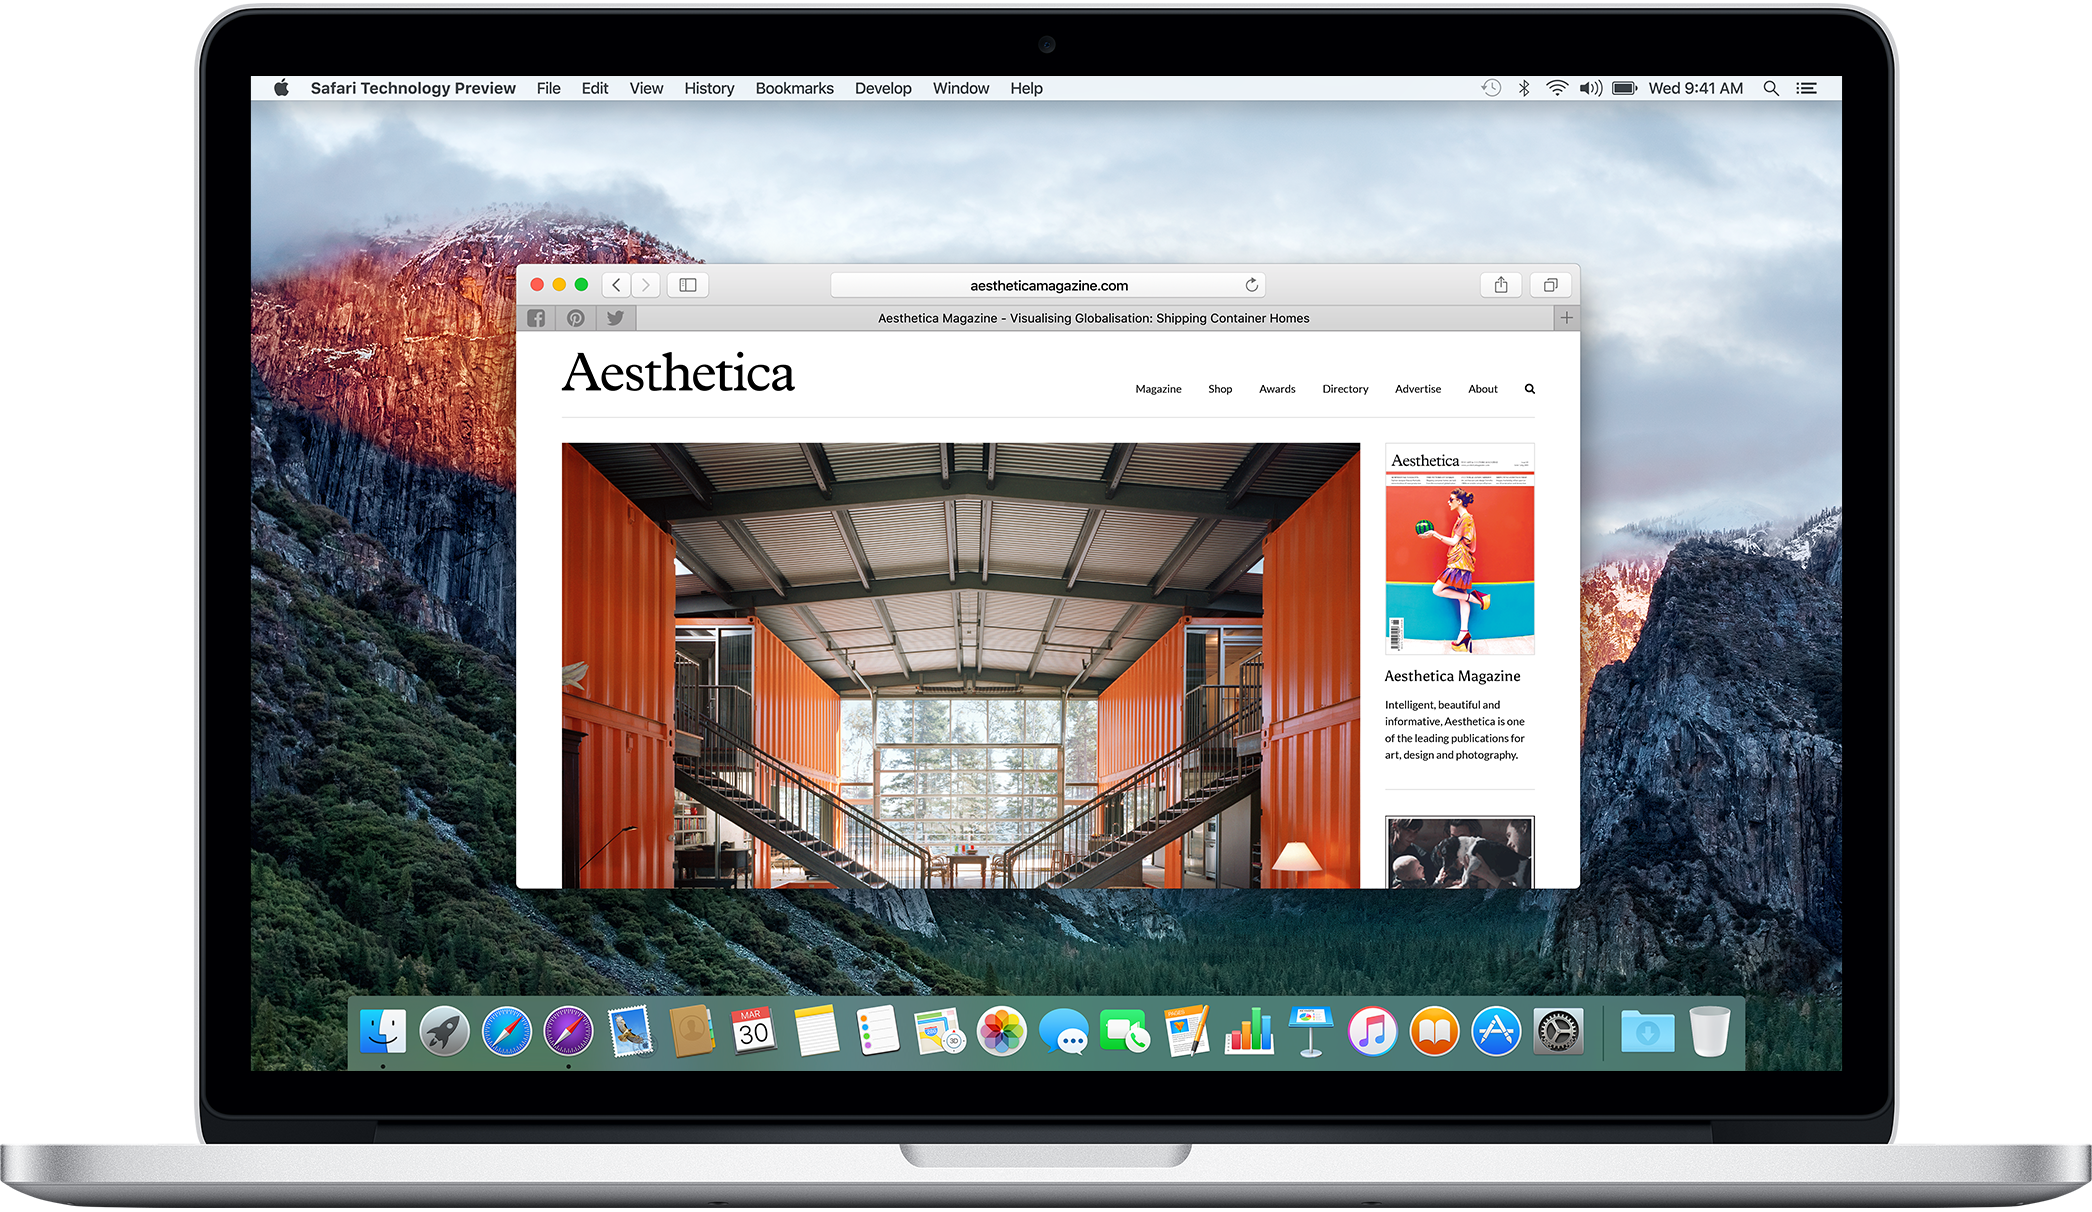 Apple Launches Safari Technology Preview A New Browser